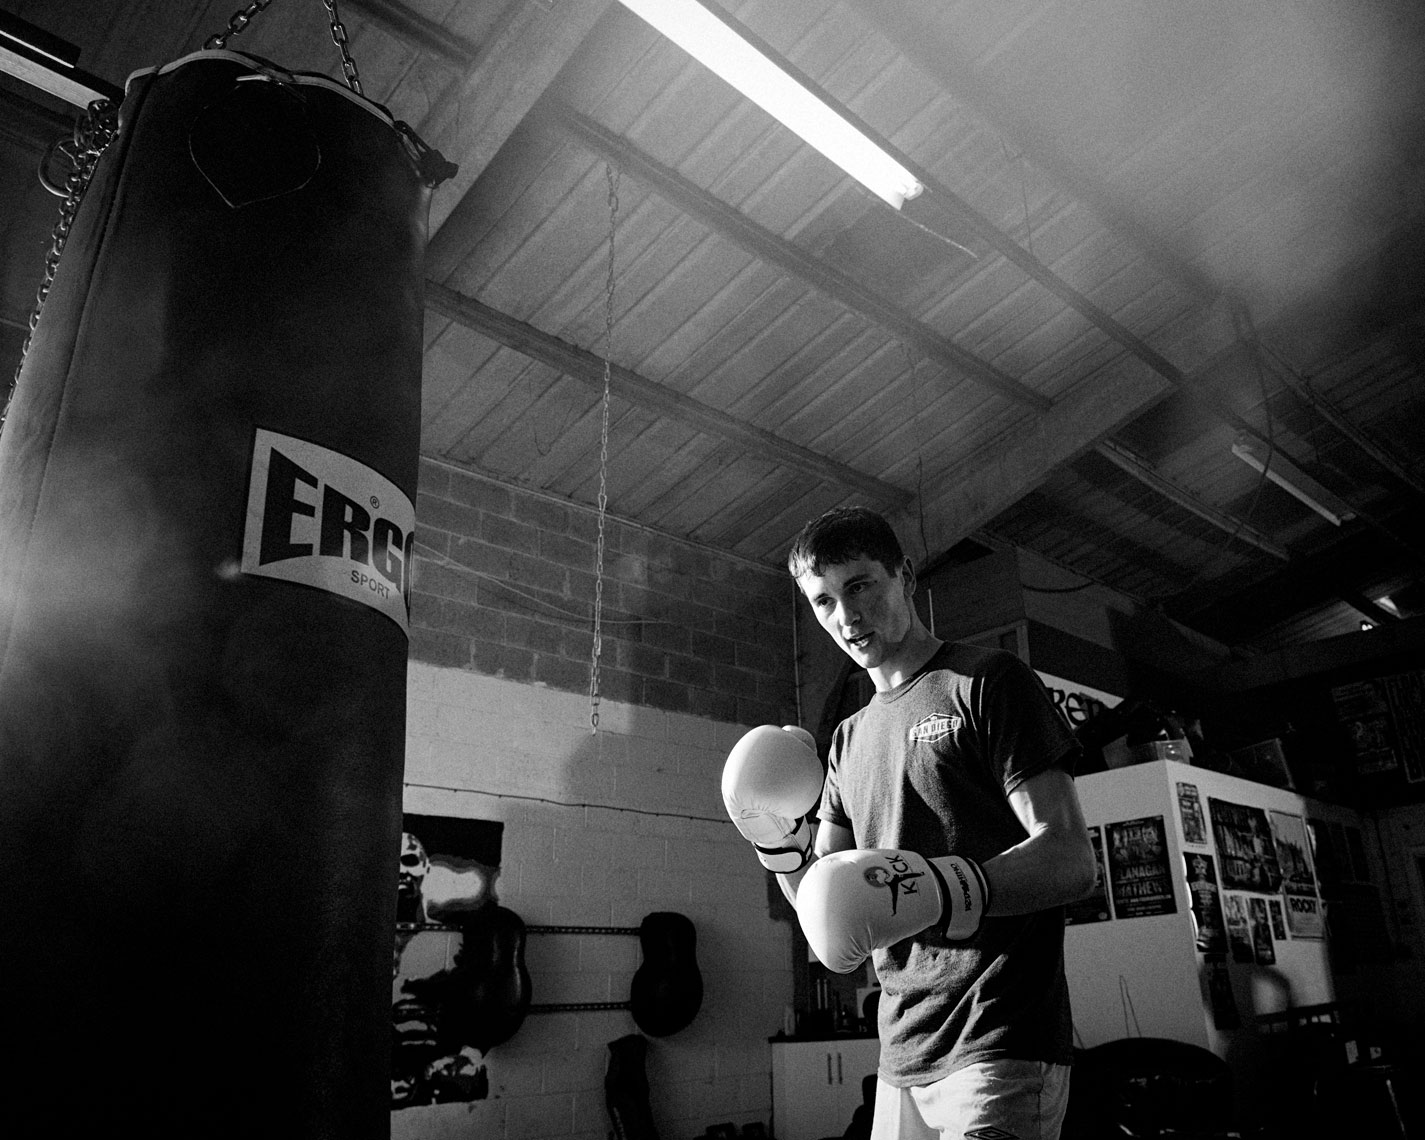 sports action: a photo series on young kickboxers